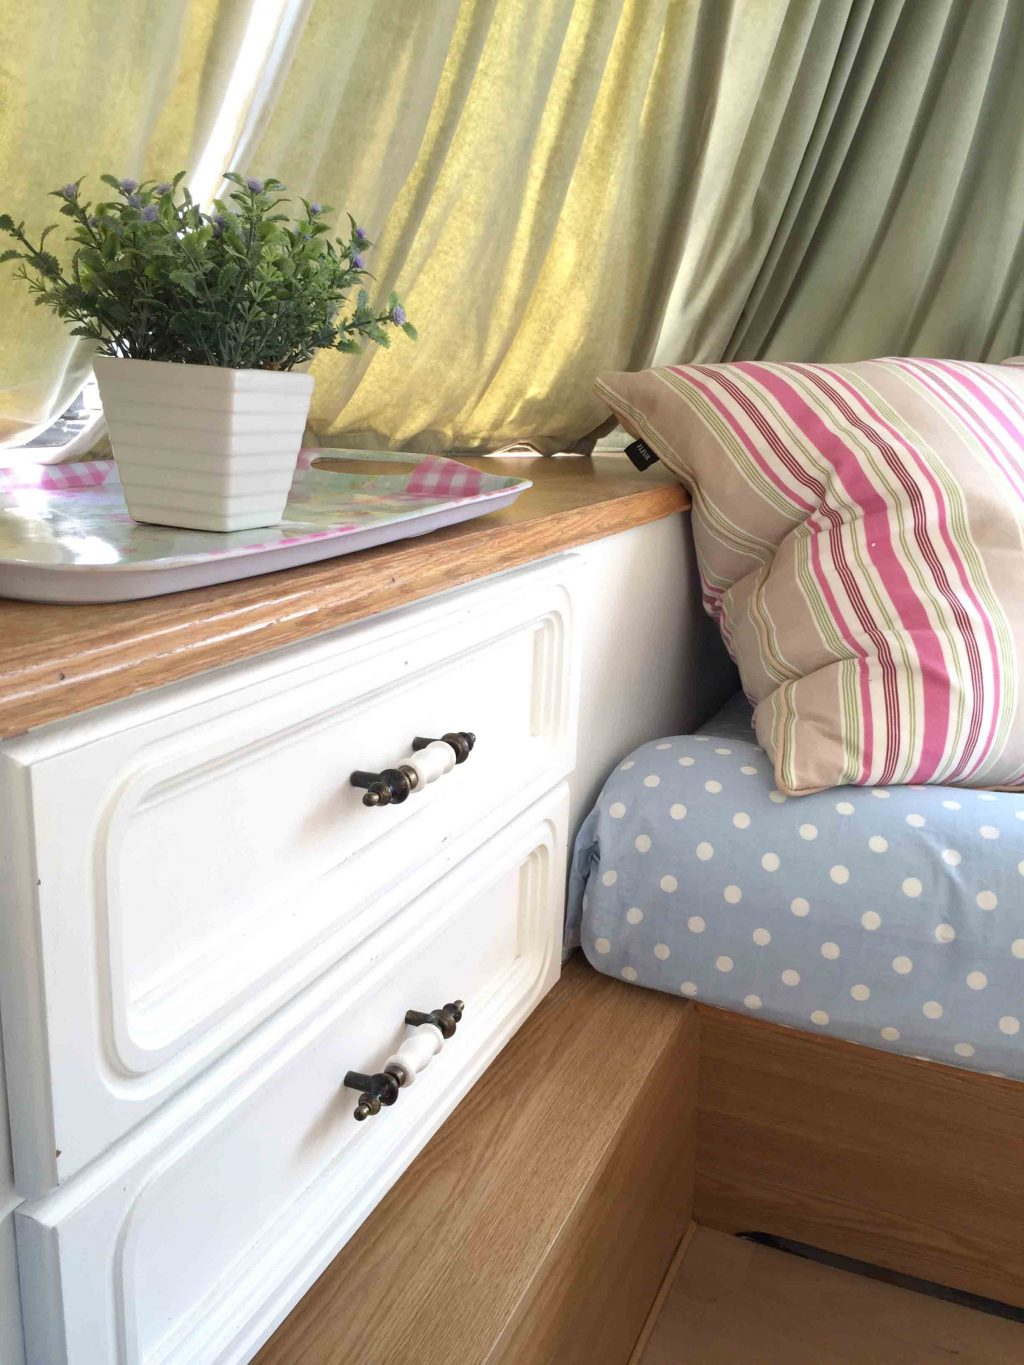 Close up of the drawer unit and shelf in Dolly the caravan; after it had been painted as part of my first caravan makeover. I kept the original green velvet curtains but covered the seats with blue polkadot fabric. More info on both of my caravan makeovers on the blog!